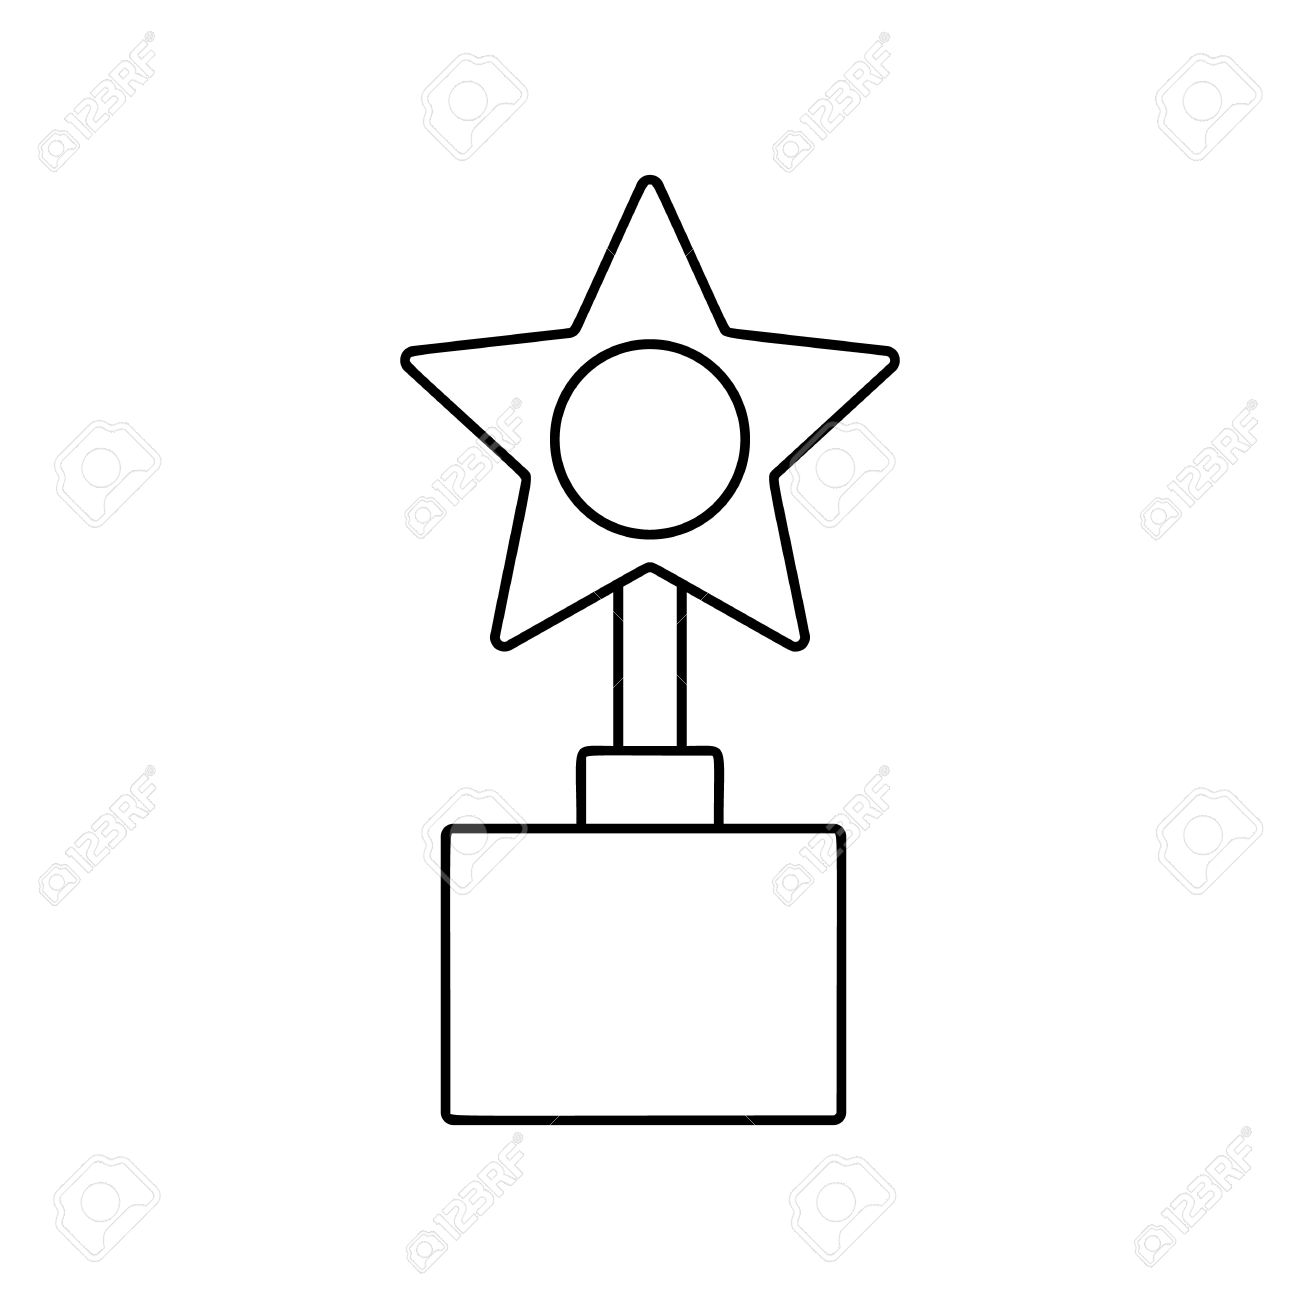 Thin star clipart banner transparent download Star Award Line Icon, Thin Contour On White Background Royalty ... banner transparent download